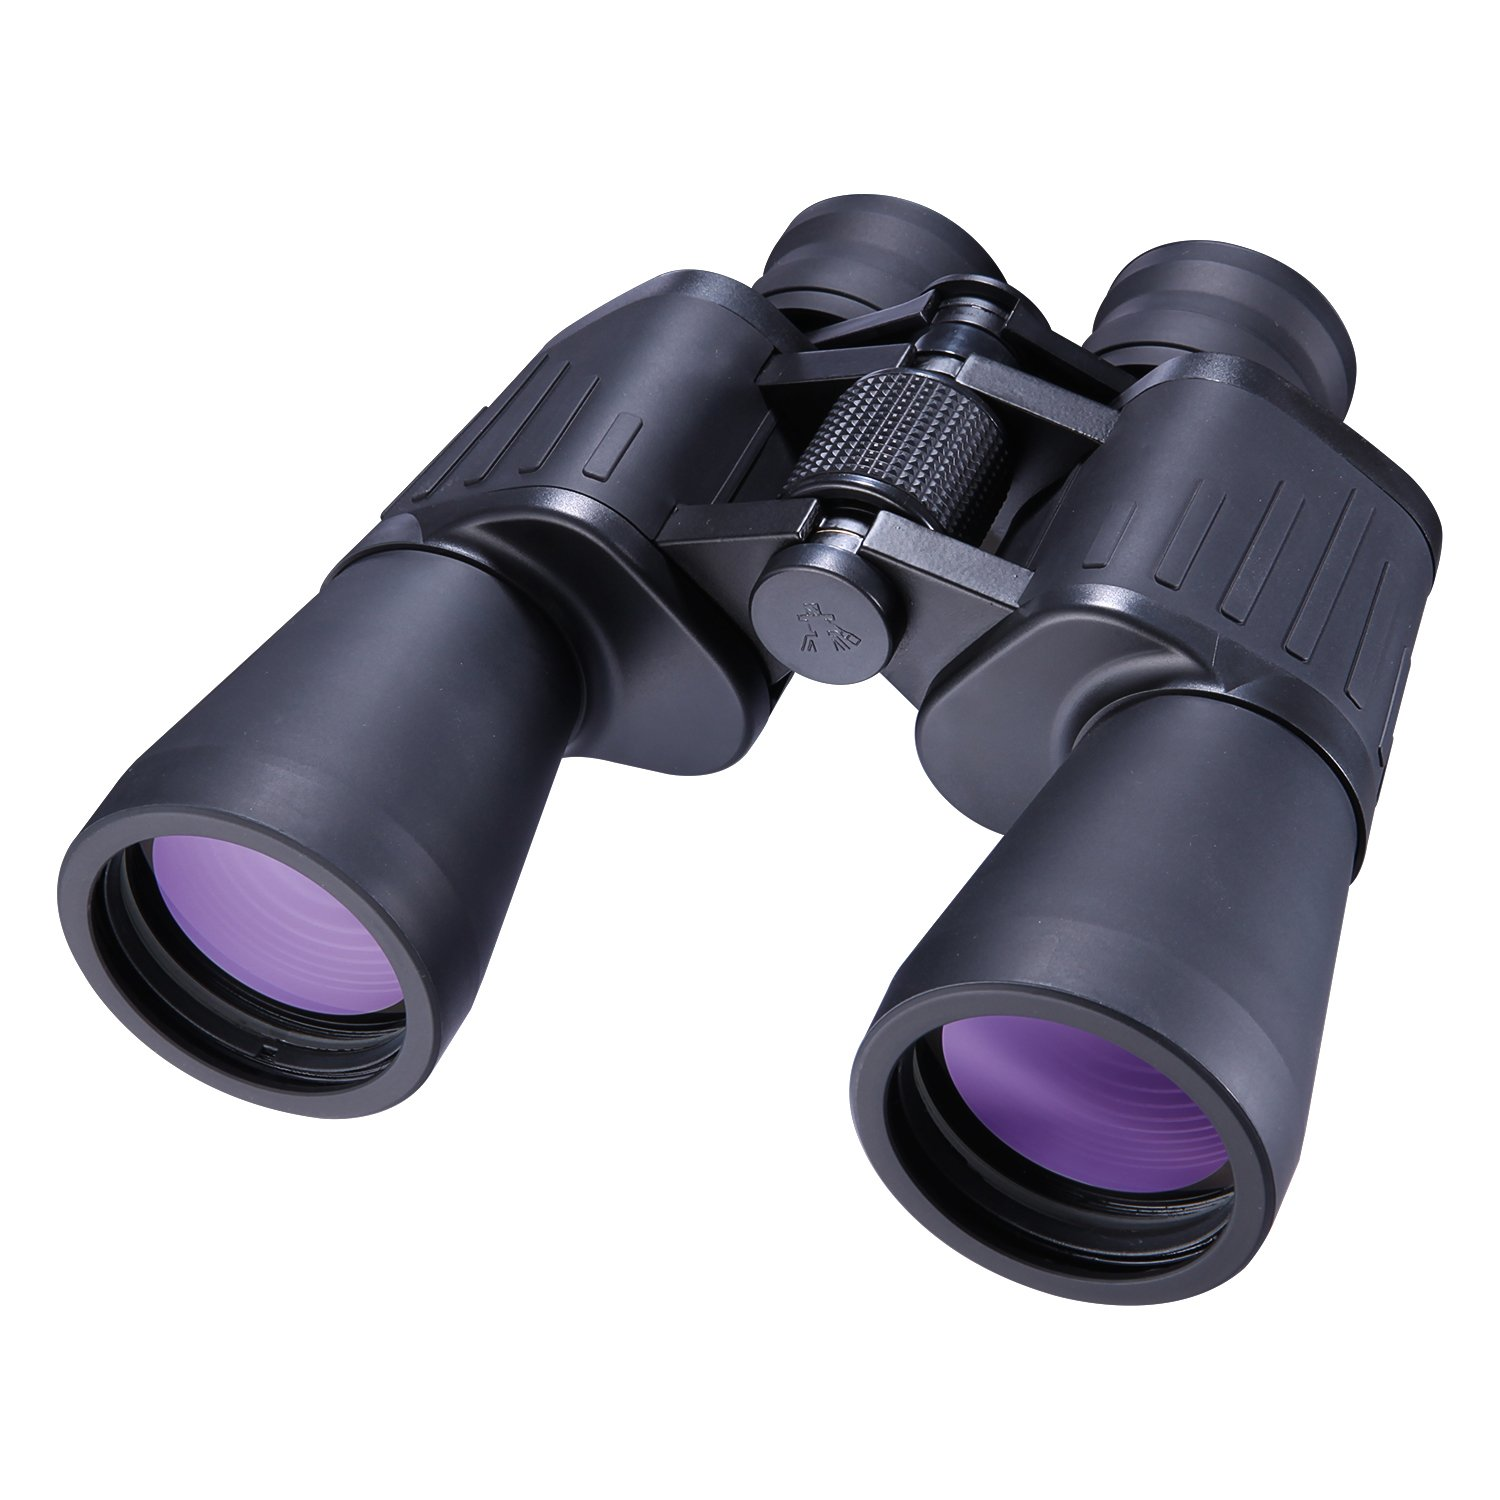 10X50 Binoculars for adults Bird Watching Stargazing Outdoor Sightseeing Climbing Traveling Sport Game Concerts,Durable Portable and Fully Coated Lens